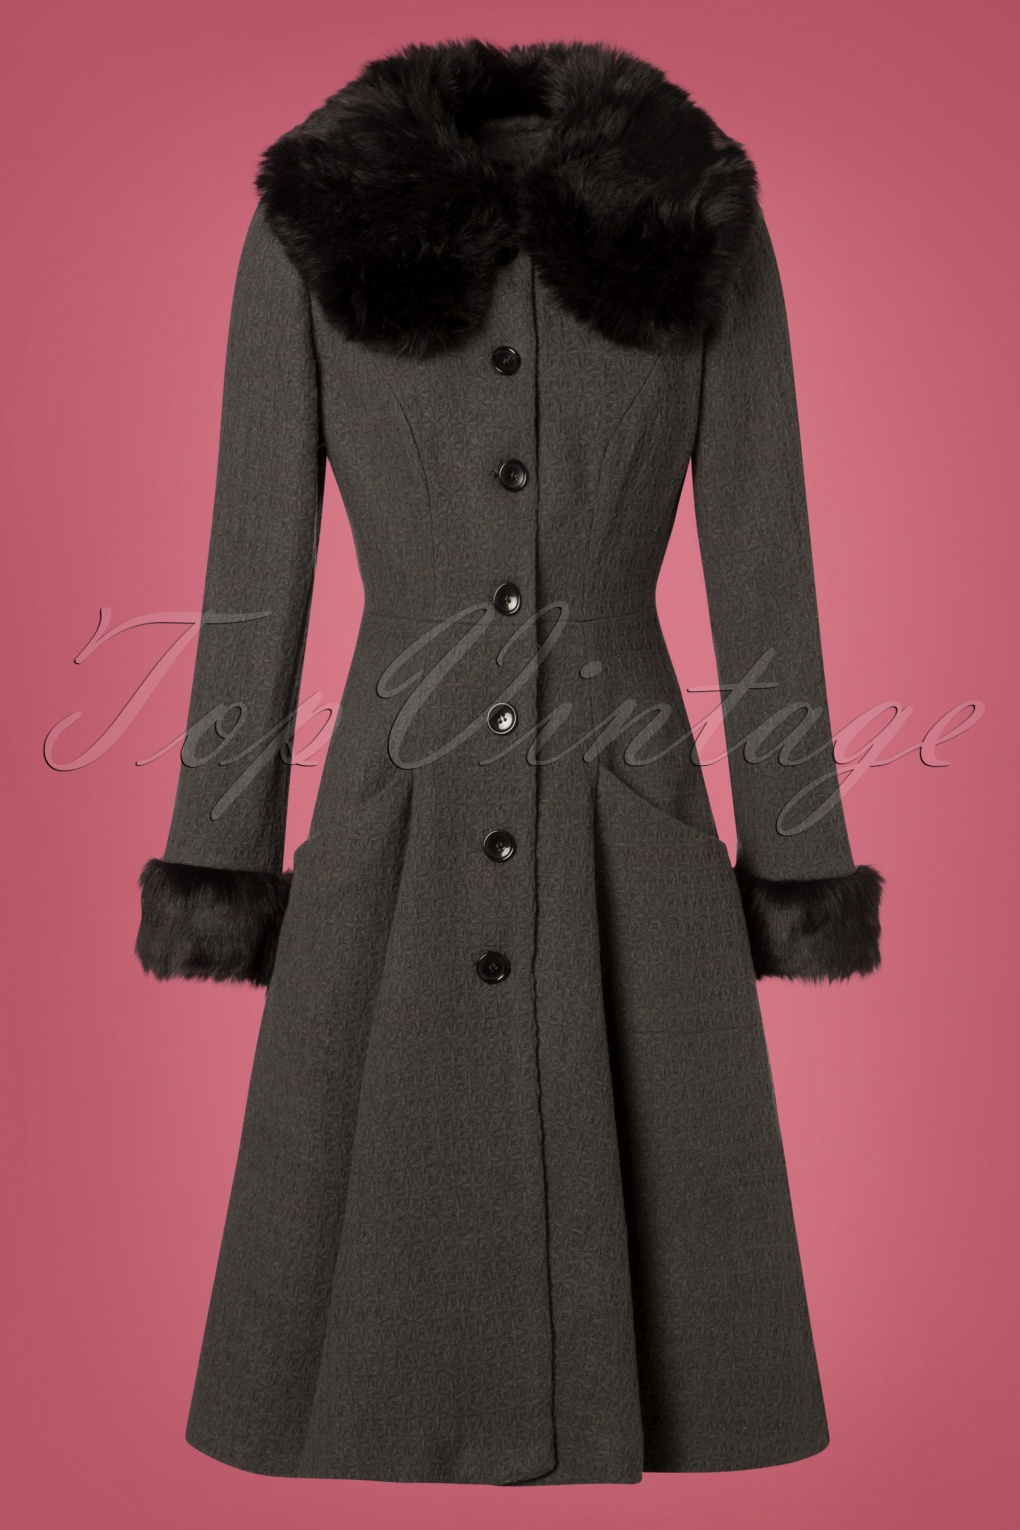 1930s Style Coats, Jackets | Art Deco Outerwear 30s Alise Swing Coat in Charcoal £109.45 AT vintagedancer.com